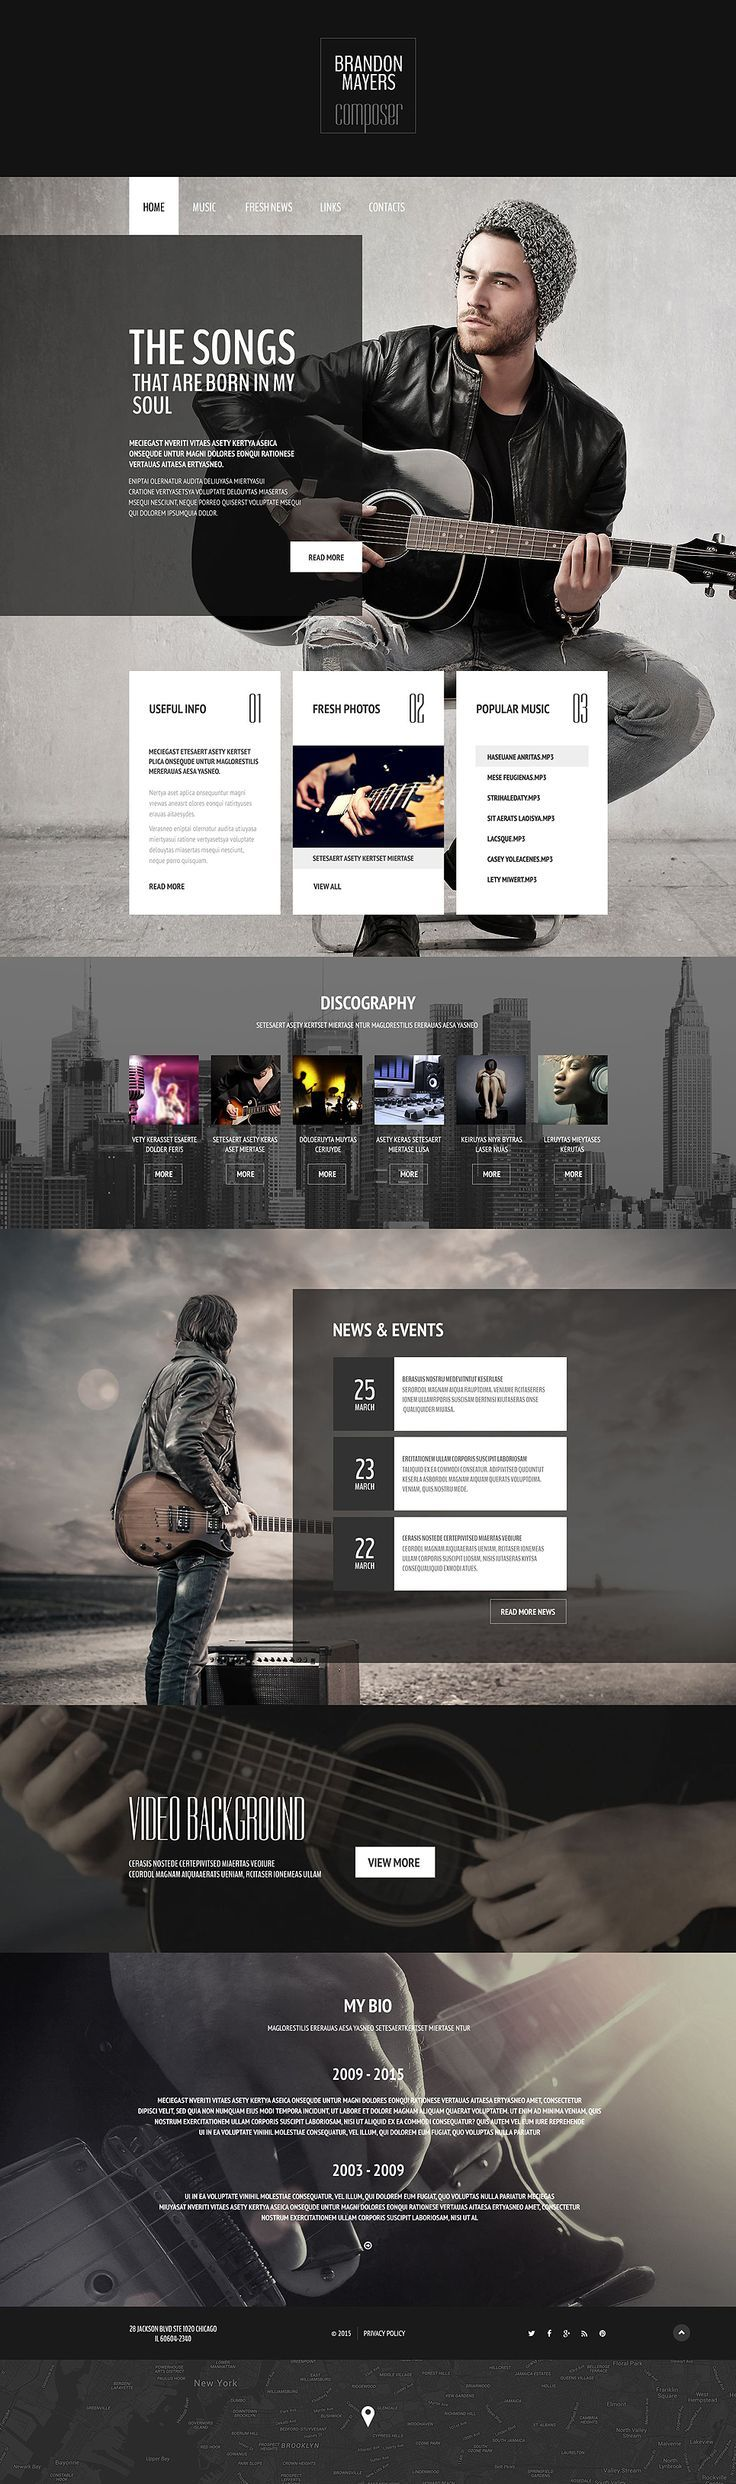 11 best Elementor Template images on Pinterest | Layout template ...